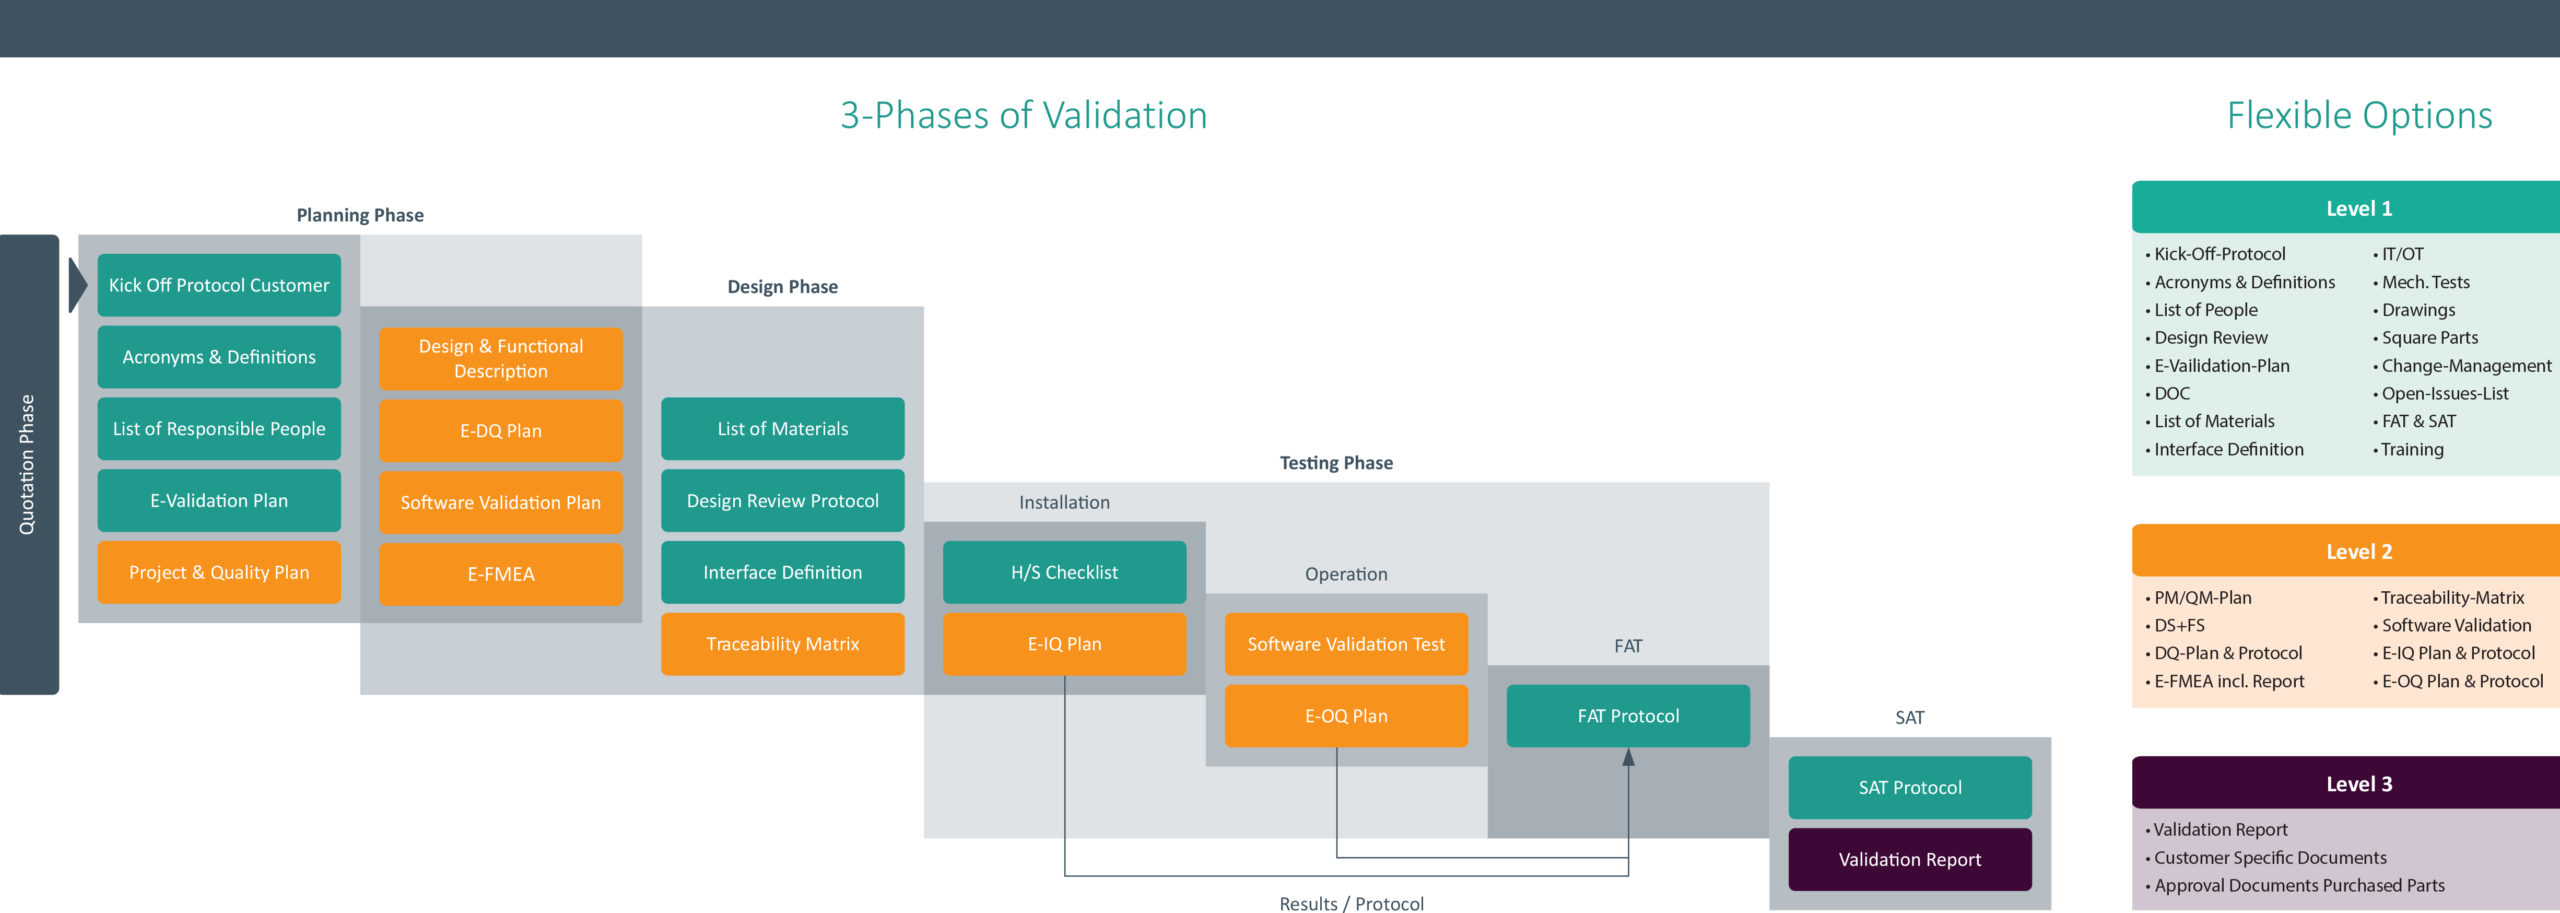 3-phase validation process